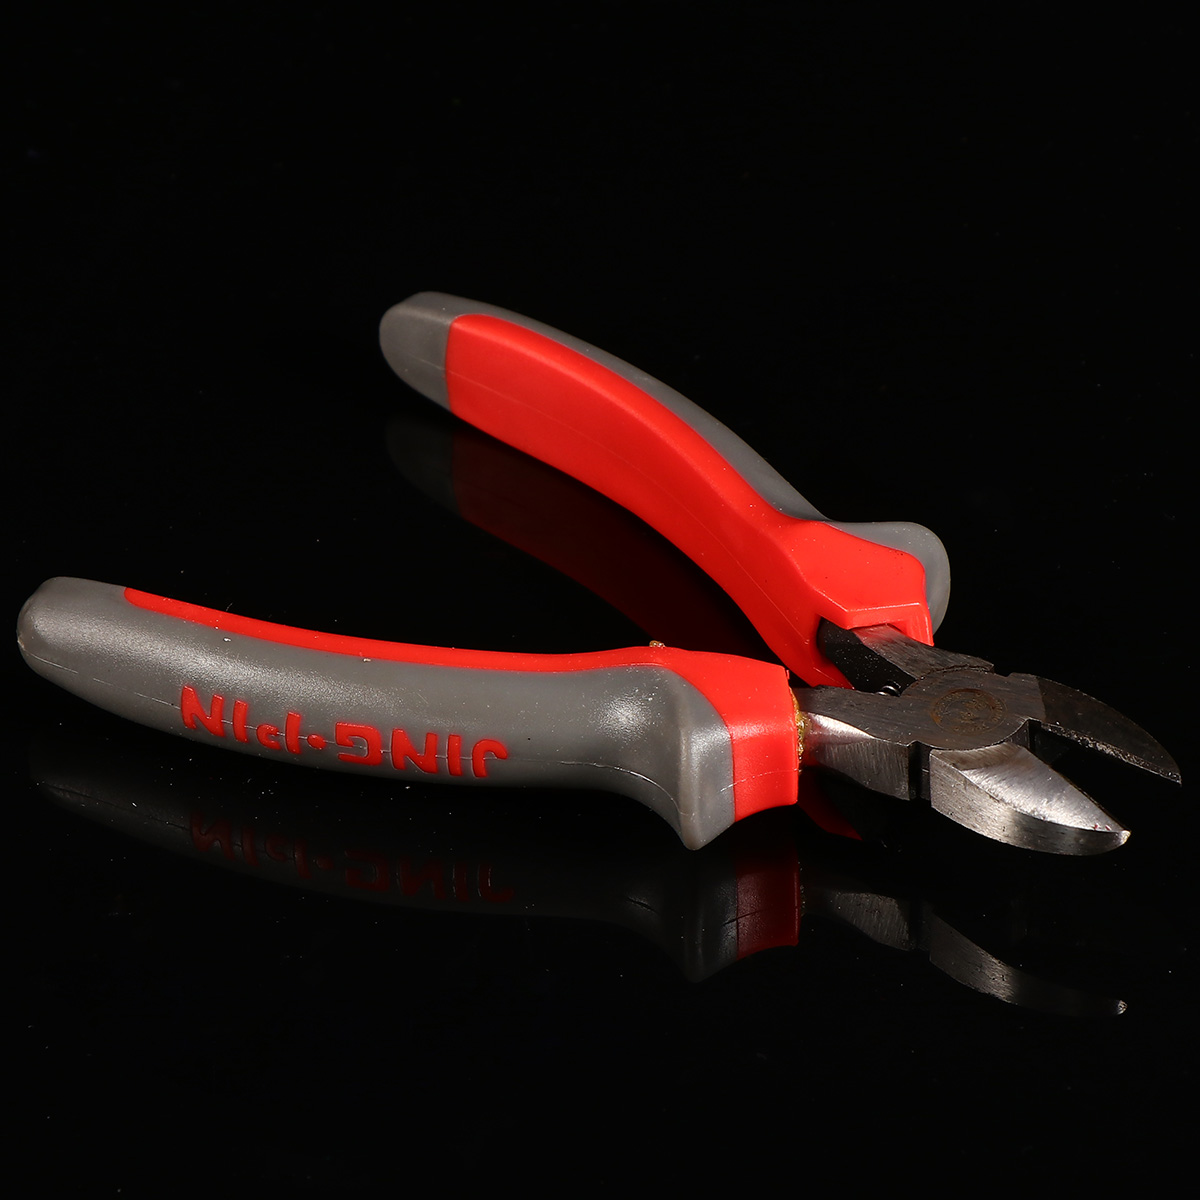 1PC Handheld High Leverage Pliers Short Jaw Side Snips Nippers Wire Cable Cutter